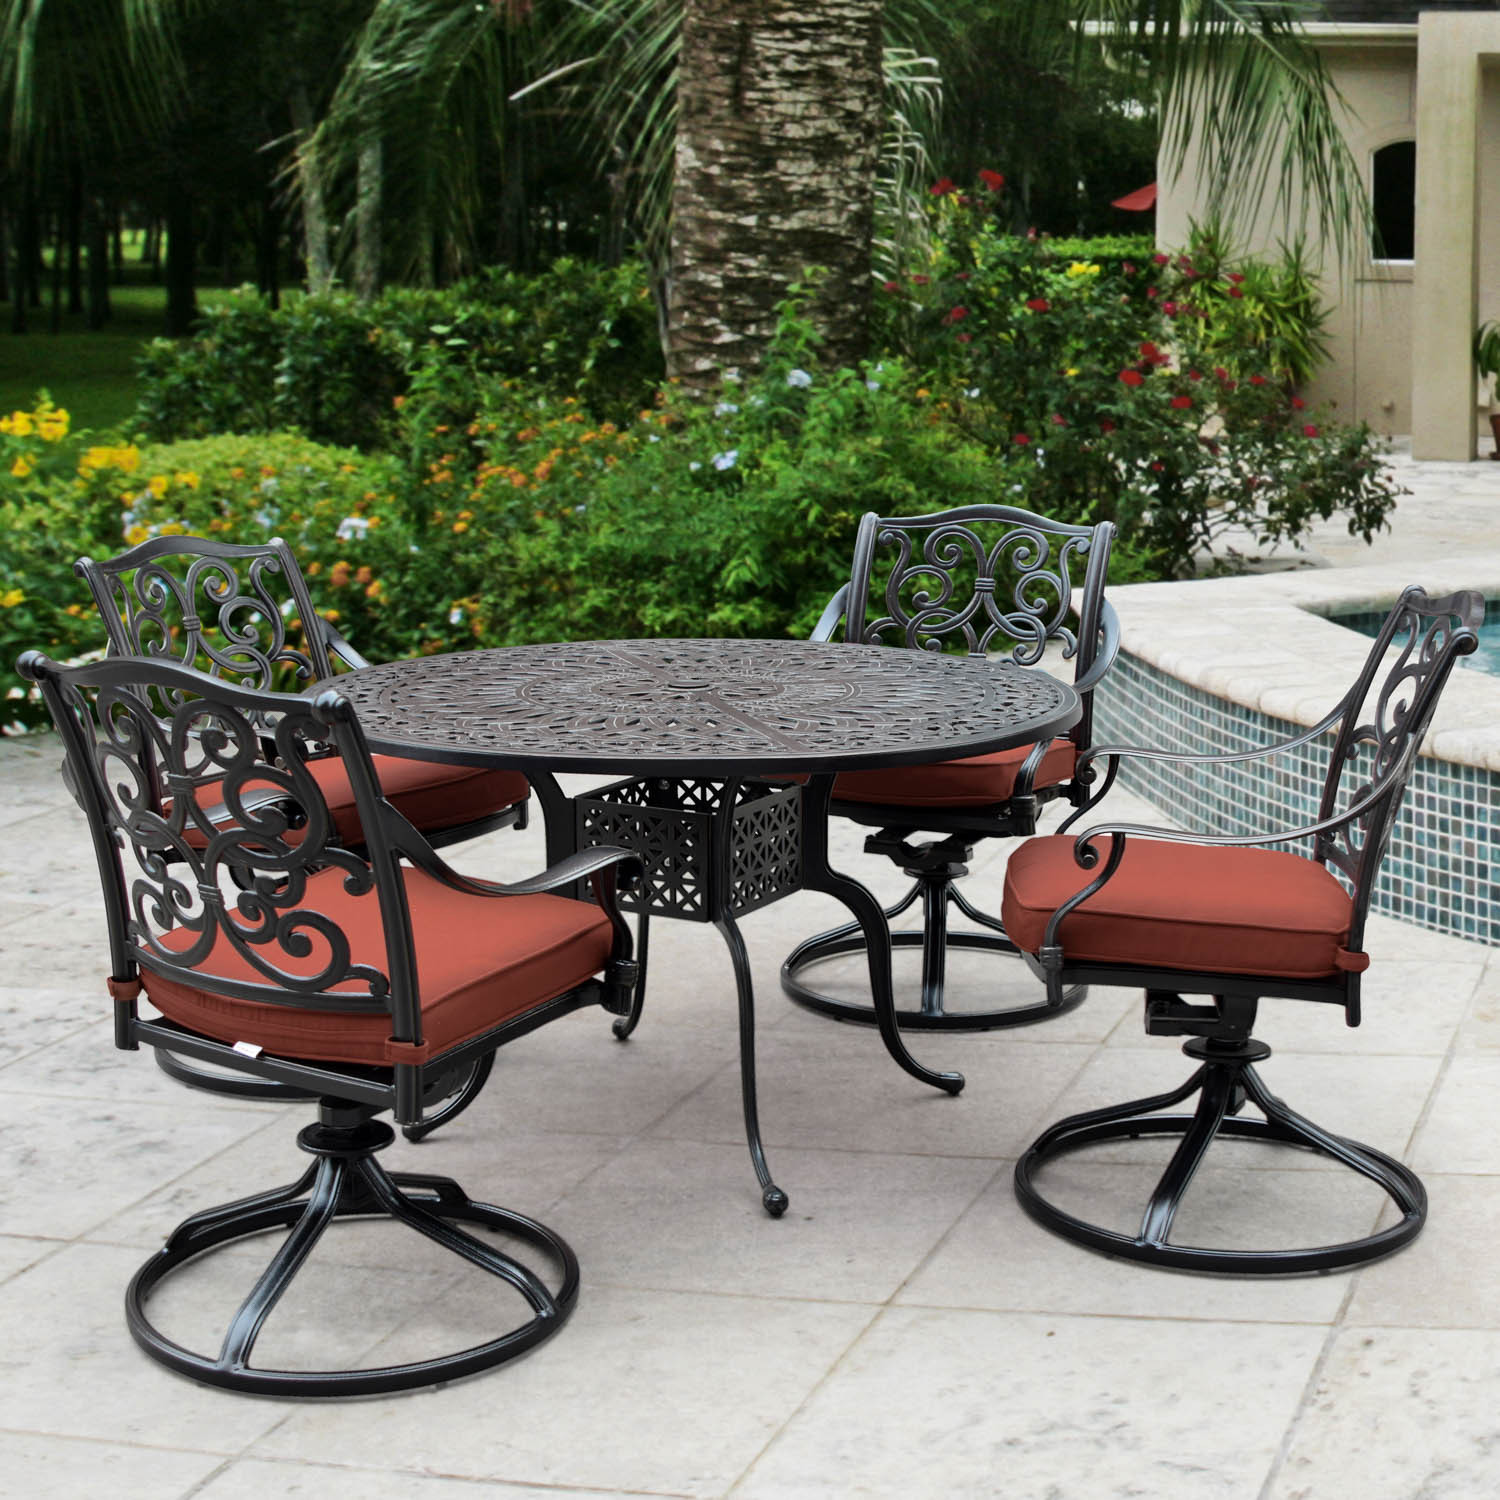 Best ideas about Restaurant Patio Furniture . Save or Pin Outdoor Patio Furniture Dining Sets & Seating Ultimate Now.